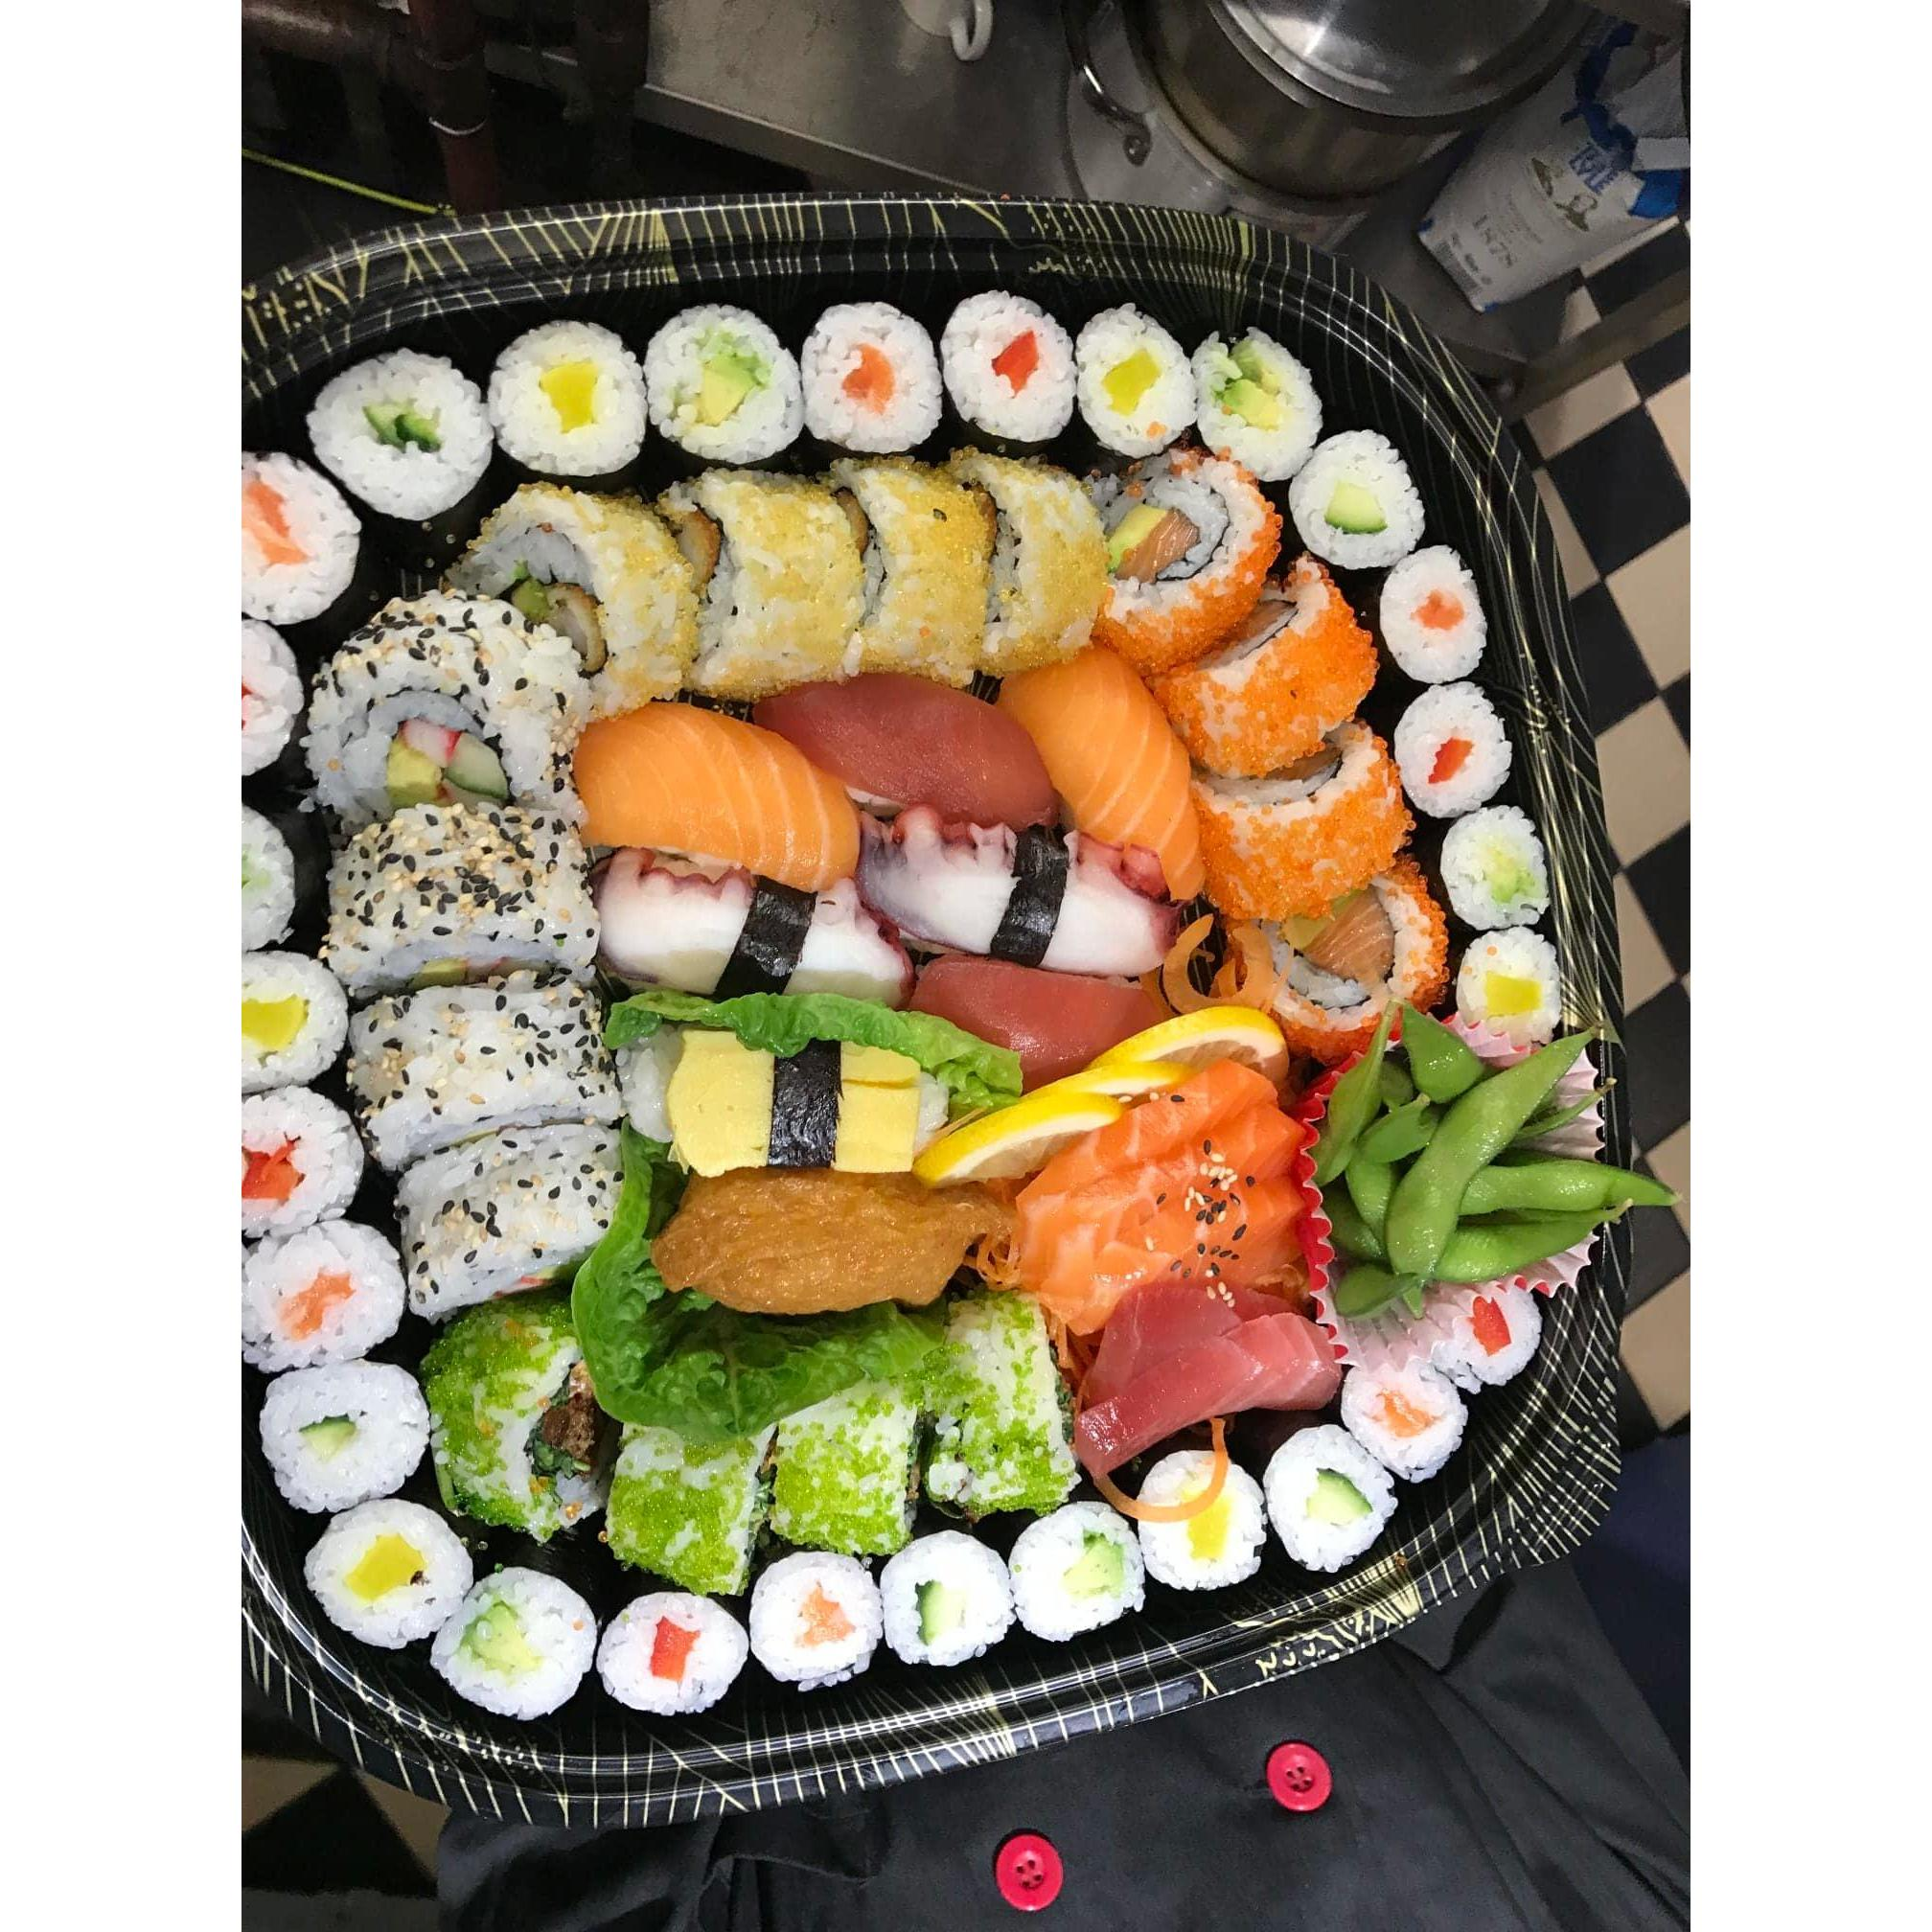 Toroi Sushi Ltd - London, London SW15 6BA - 020 8789 9991 | ShowMeLocal.com